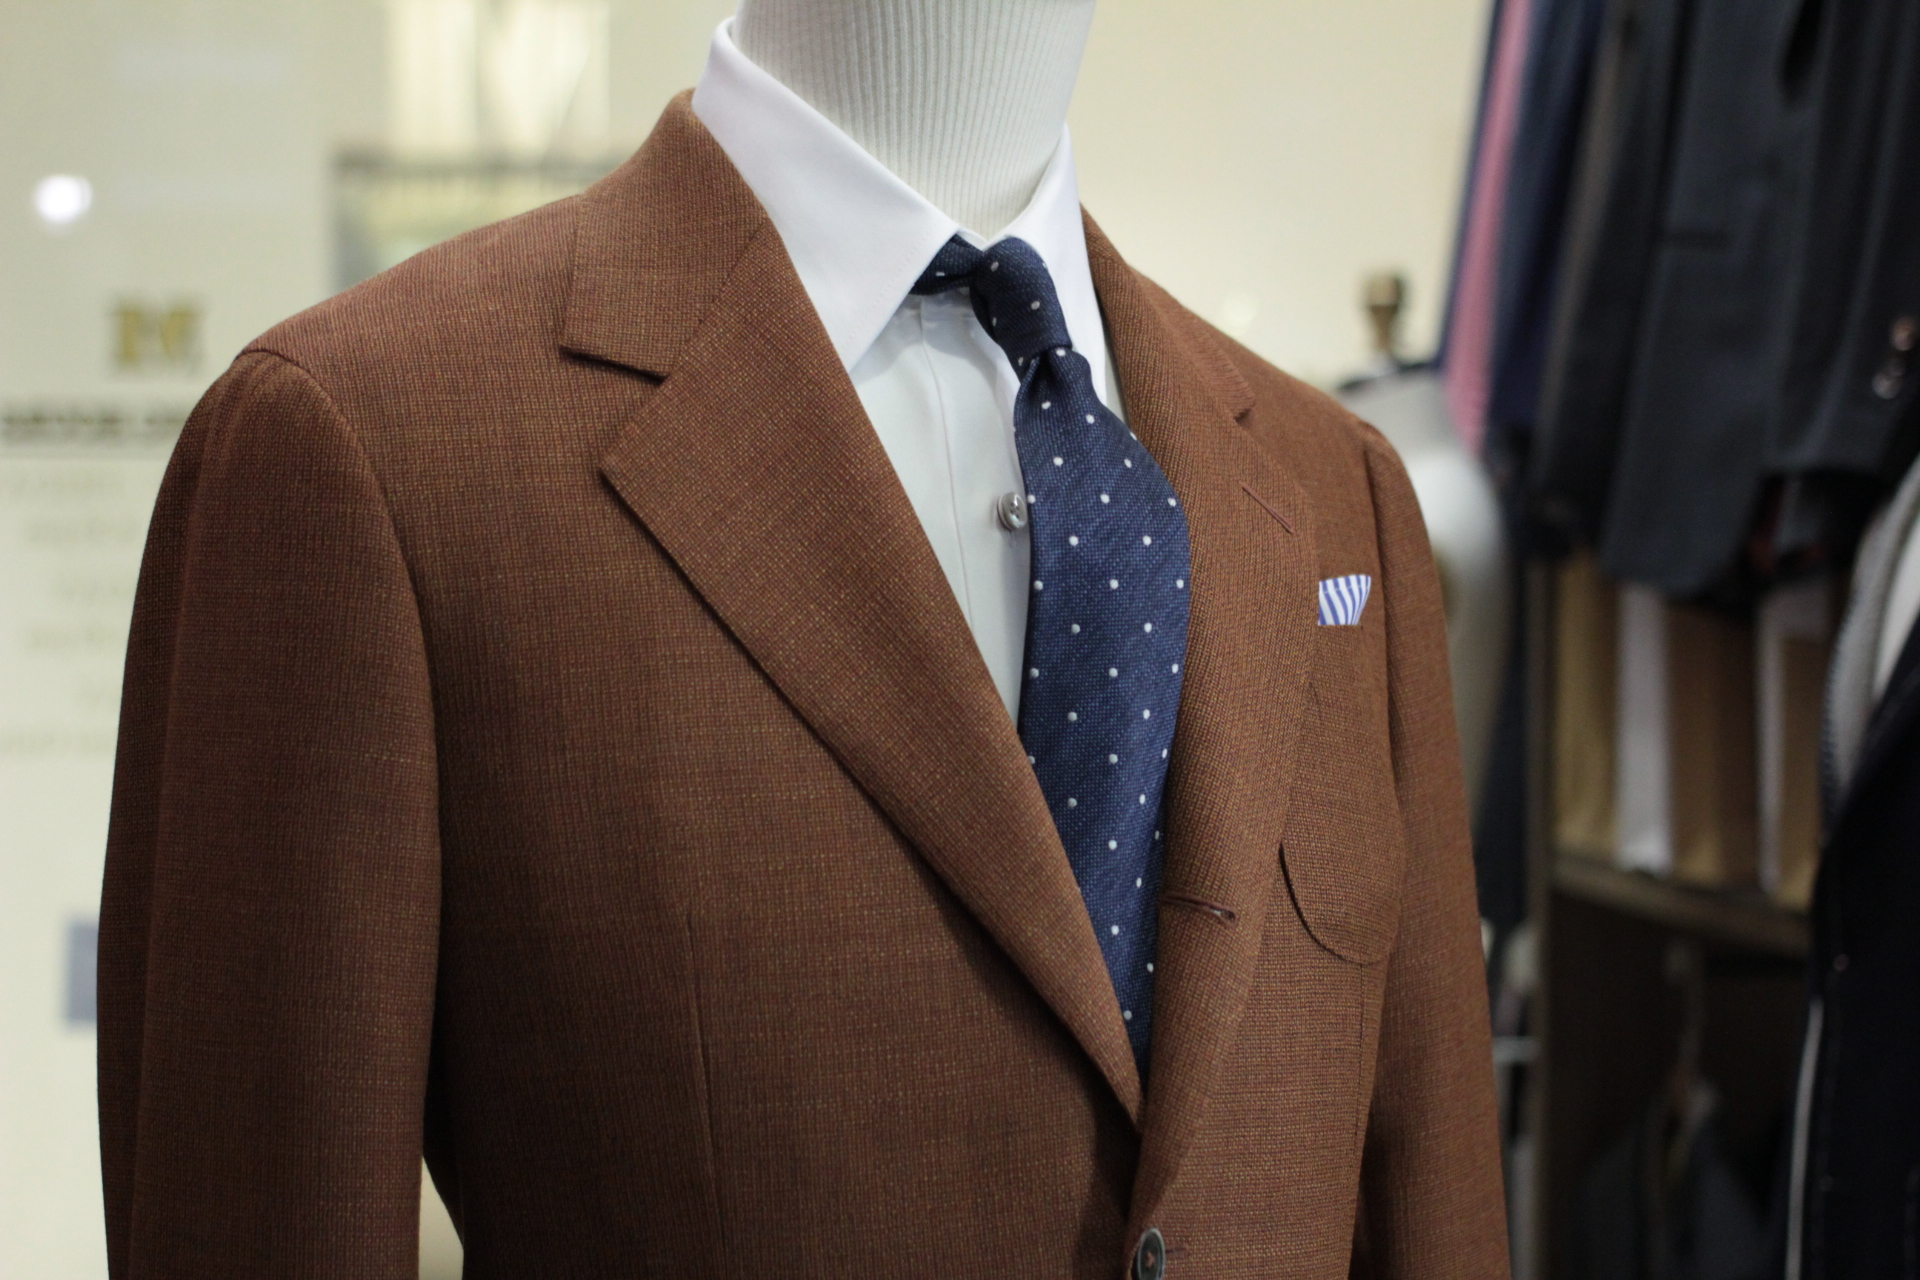 Miami | Made Suits by MESH Blazers HS1730 by Holland & Sherry Hopsack side view zoom.JPG